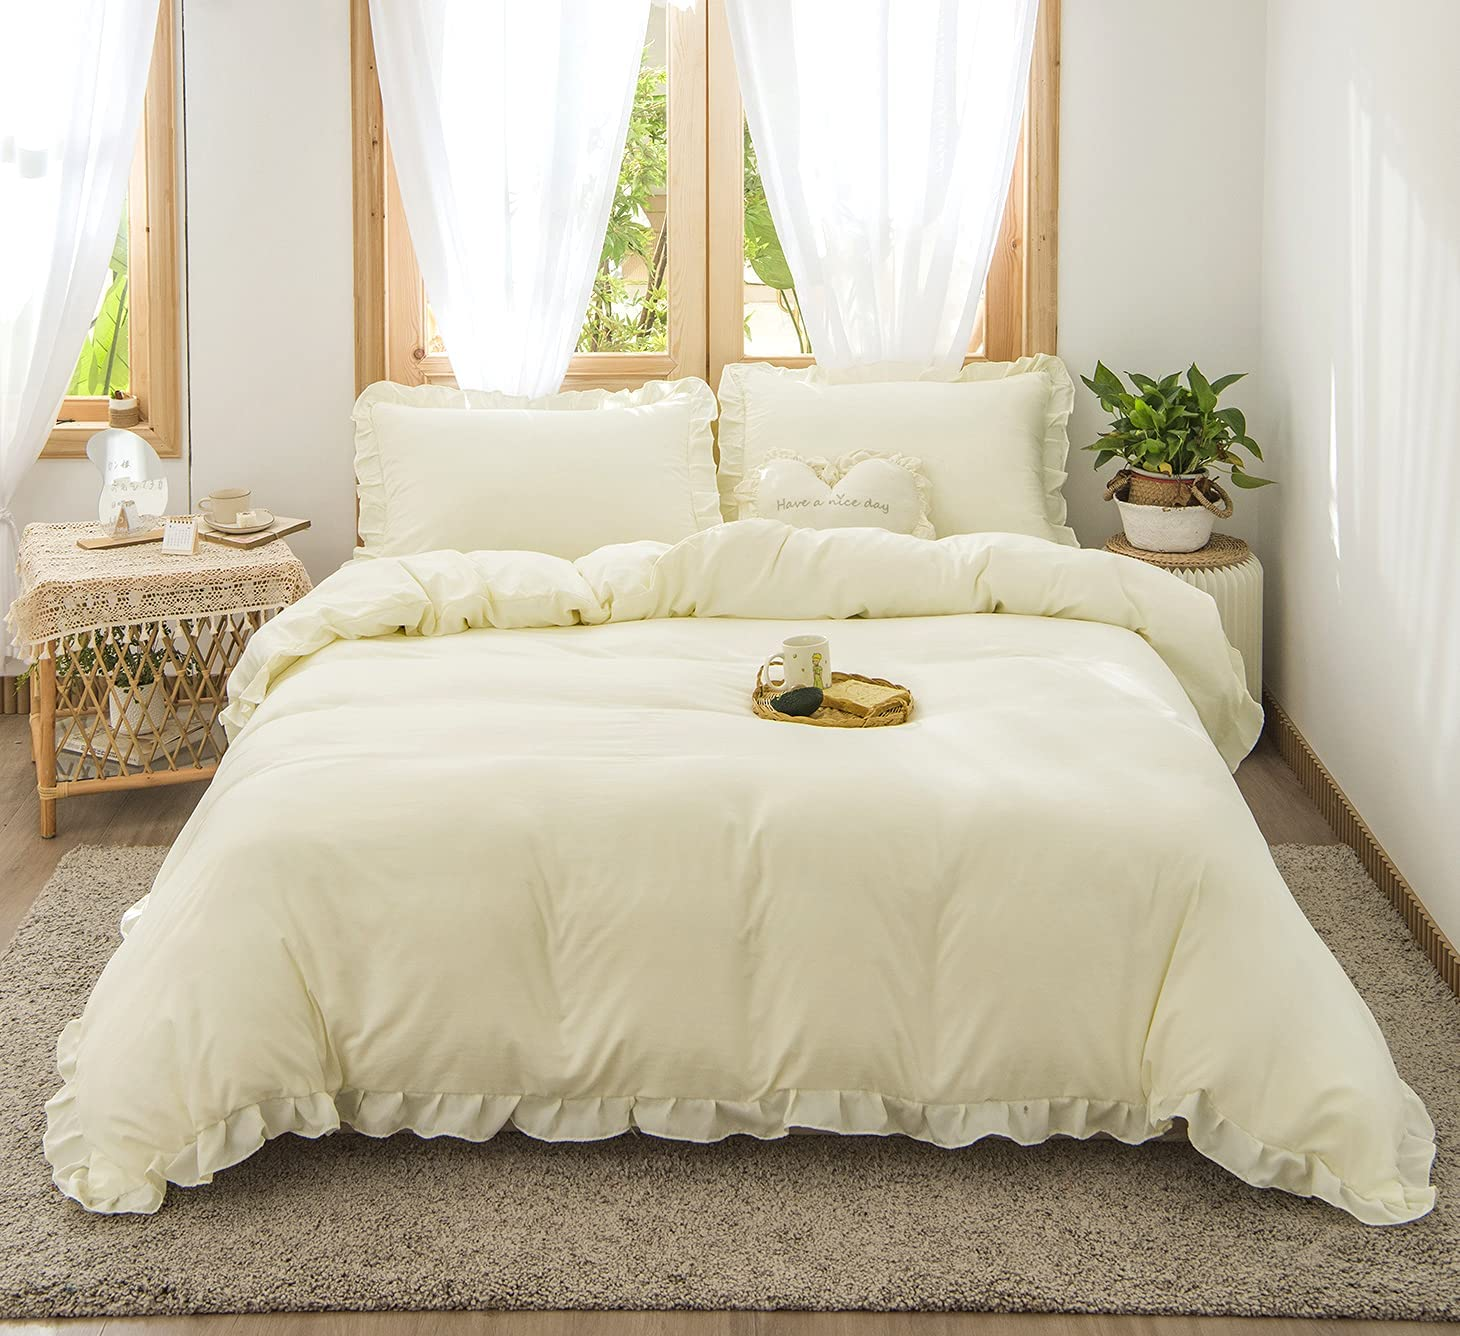 Merryword Beige Ruffle Bedding Cream Store Solid Cover Set Duvet Industry No. 1